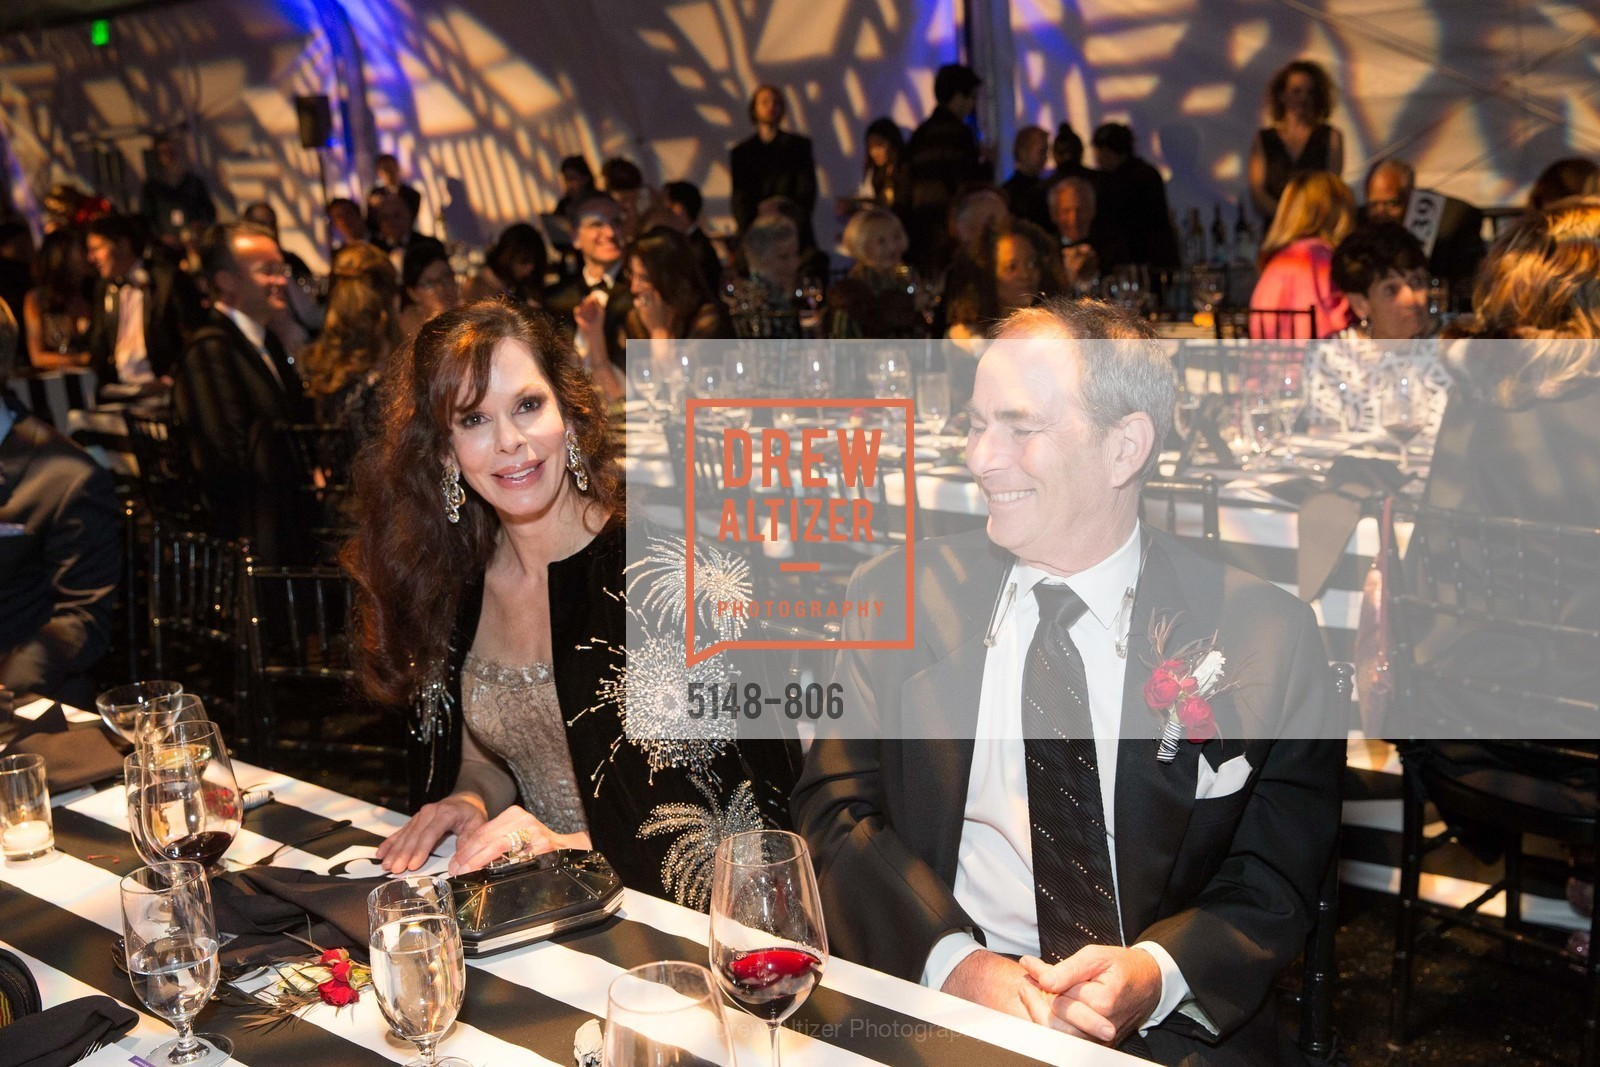 Stephanie Marver, Todd Werby, A.C.T. Gala Come Get Stranded, US, April 25th, 2015,Drew Altizer, Drew Altizer Photography, full-service agency, private events, San Francisco photographer, photographer california